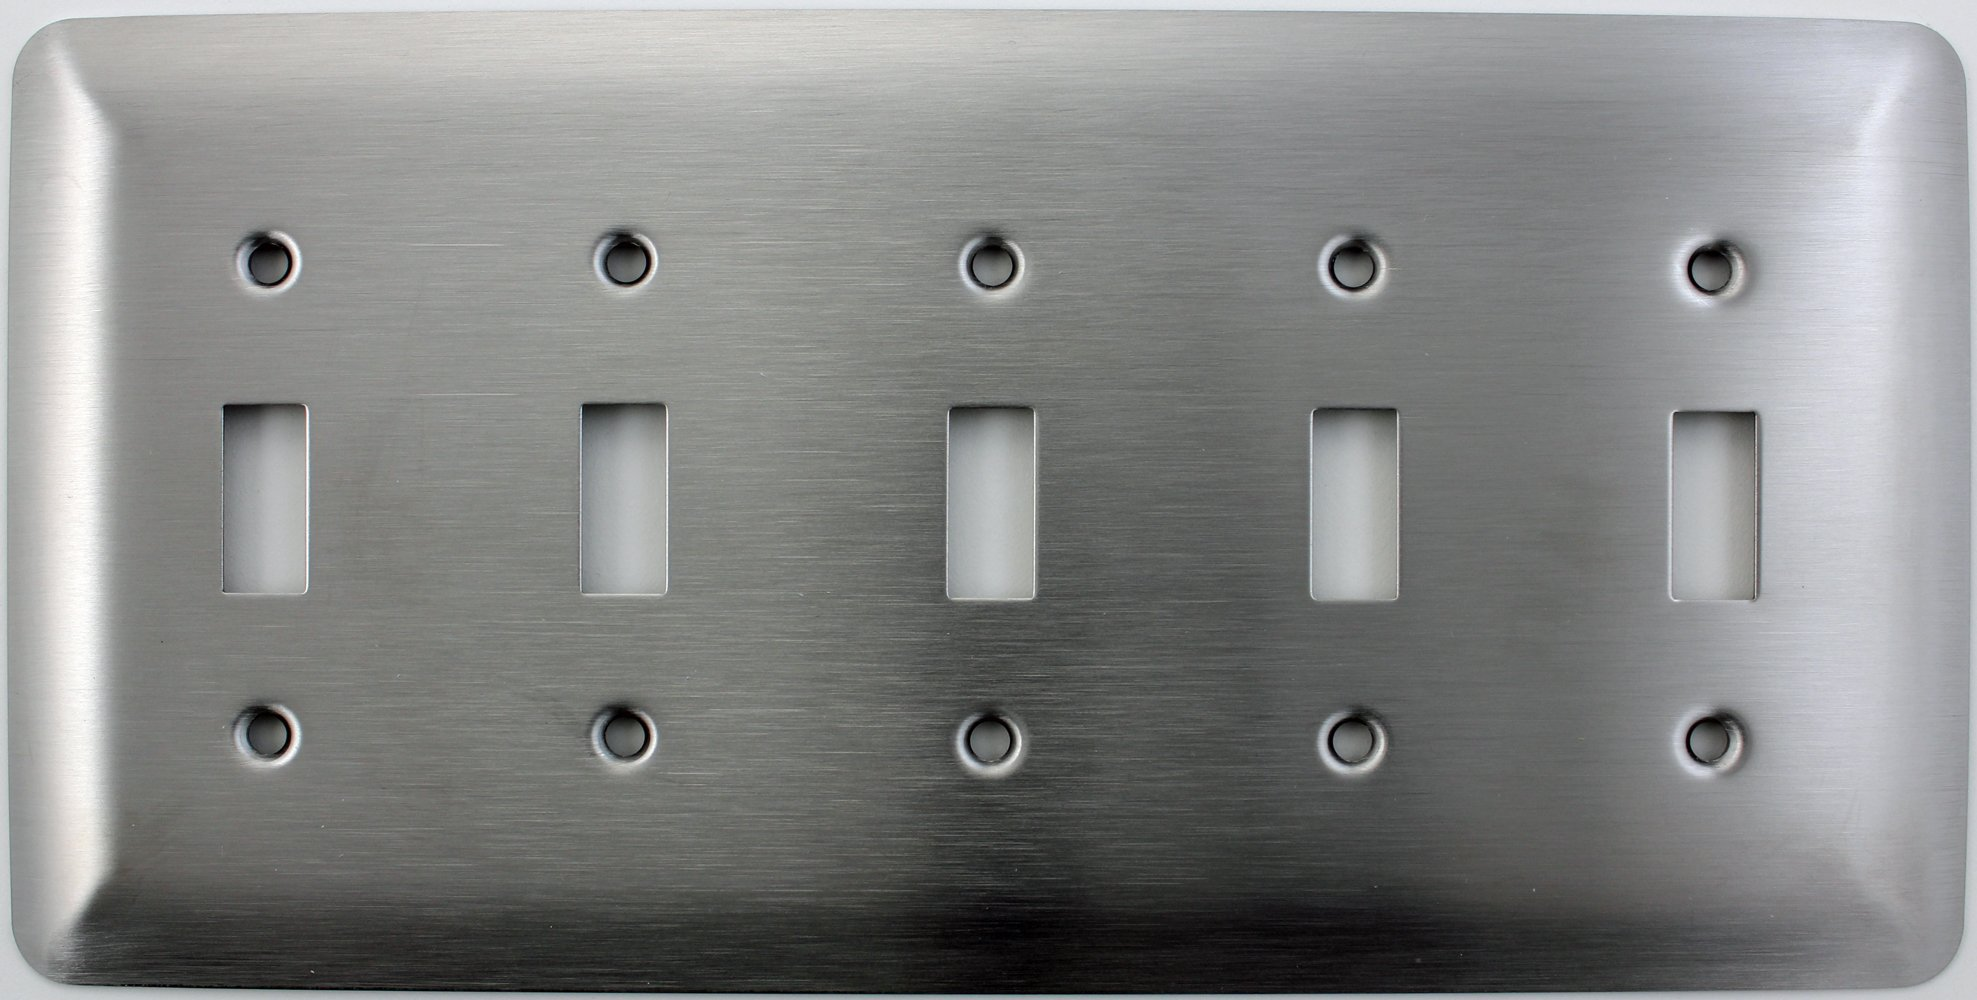 Mulberry Princess Style Satin Stainless Steel Five Gang Toggle Light Switch Wall Plate